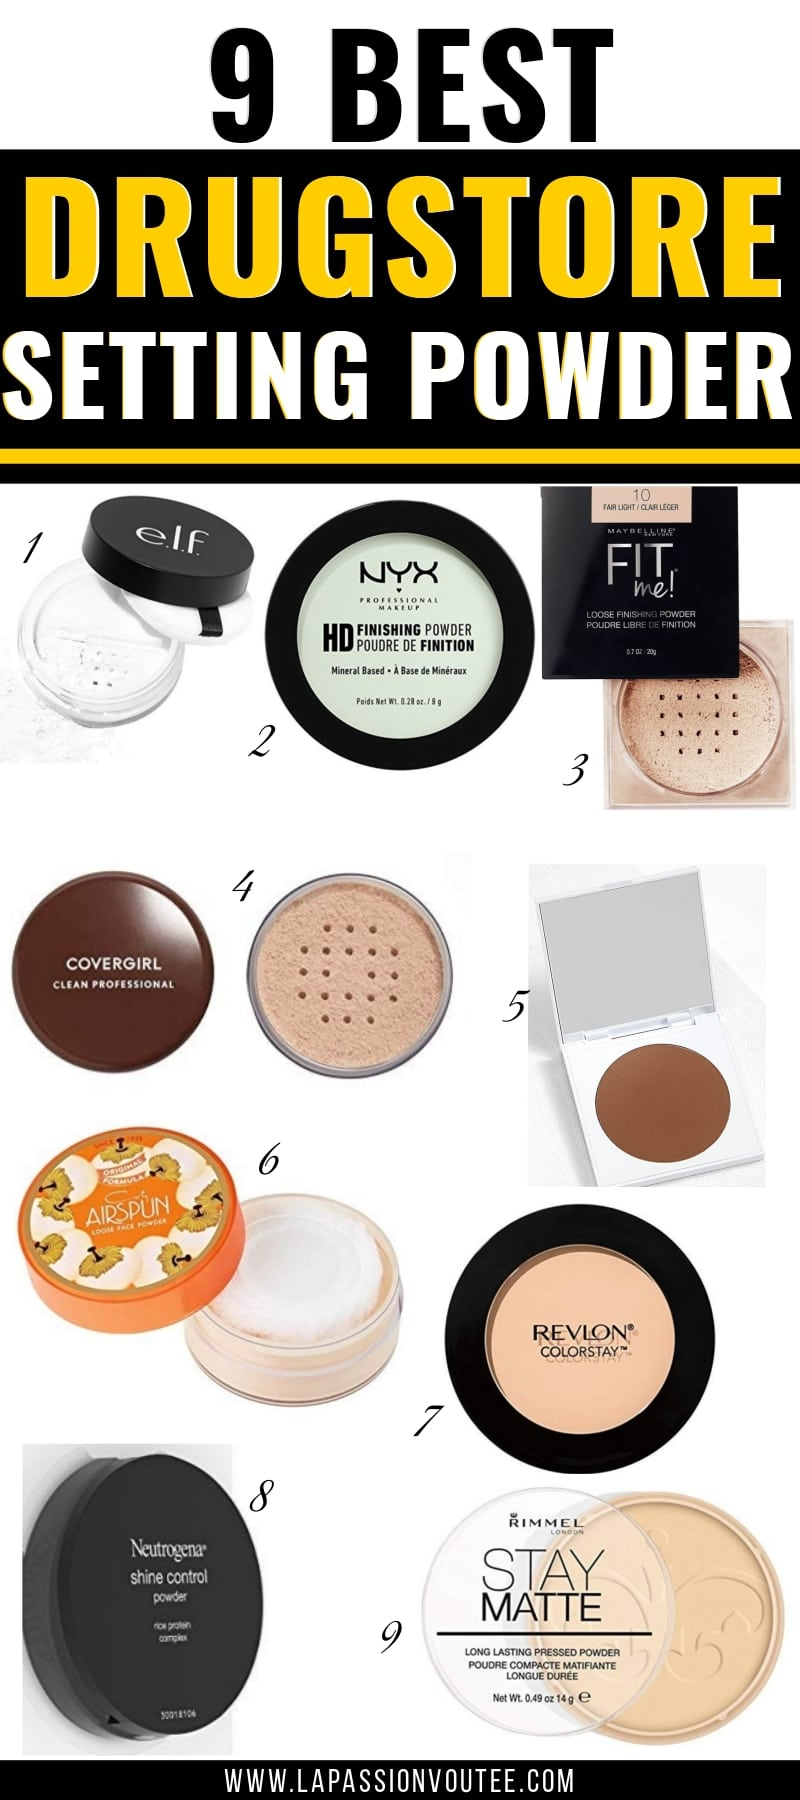 We've rounded up the best drugstore setting powders for oily skin that REALLY work. From Covergirl, Maybelline, and Revlon to ColourPop, NYX, and Coty Airspun this comprehensive shopping guide features both the best drugstore pressed powders and loose powders.